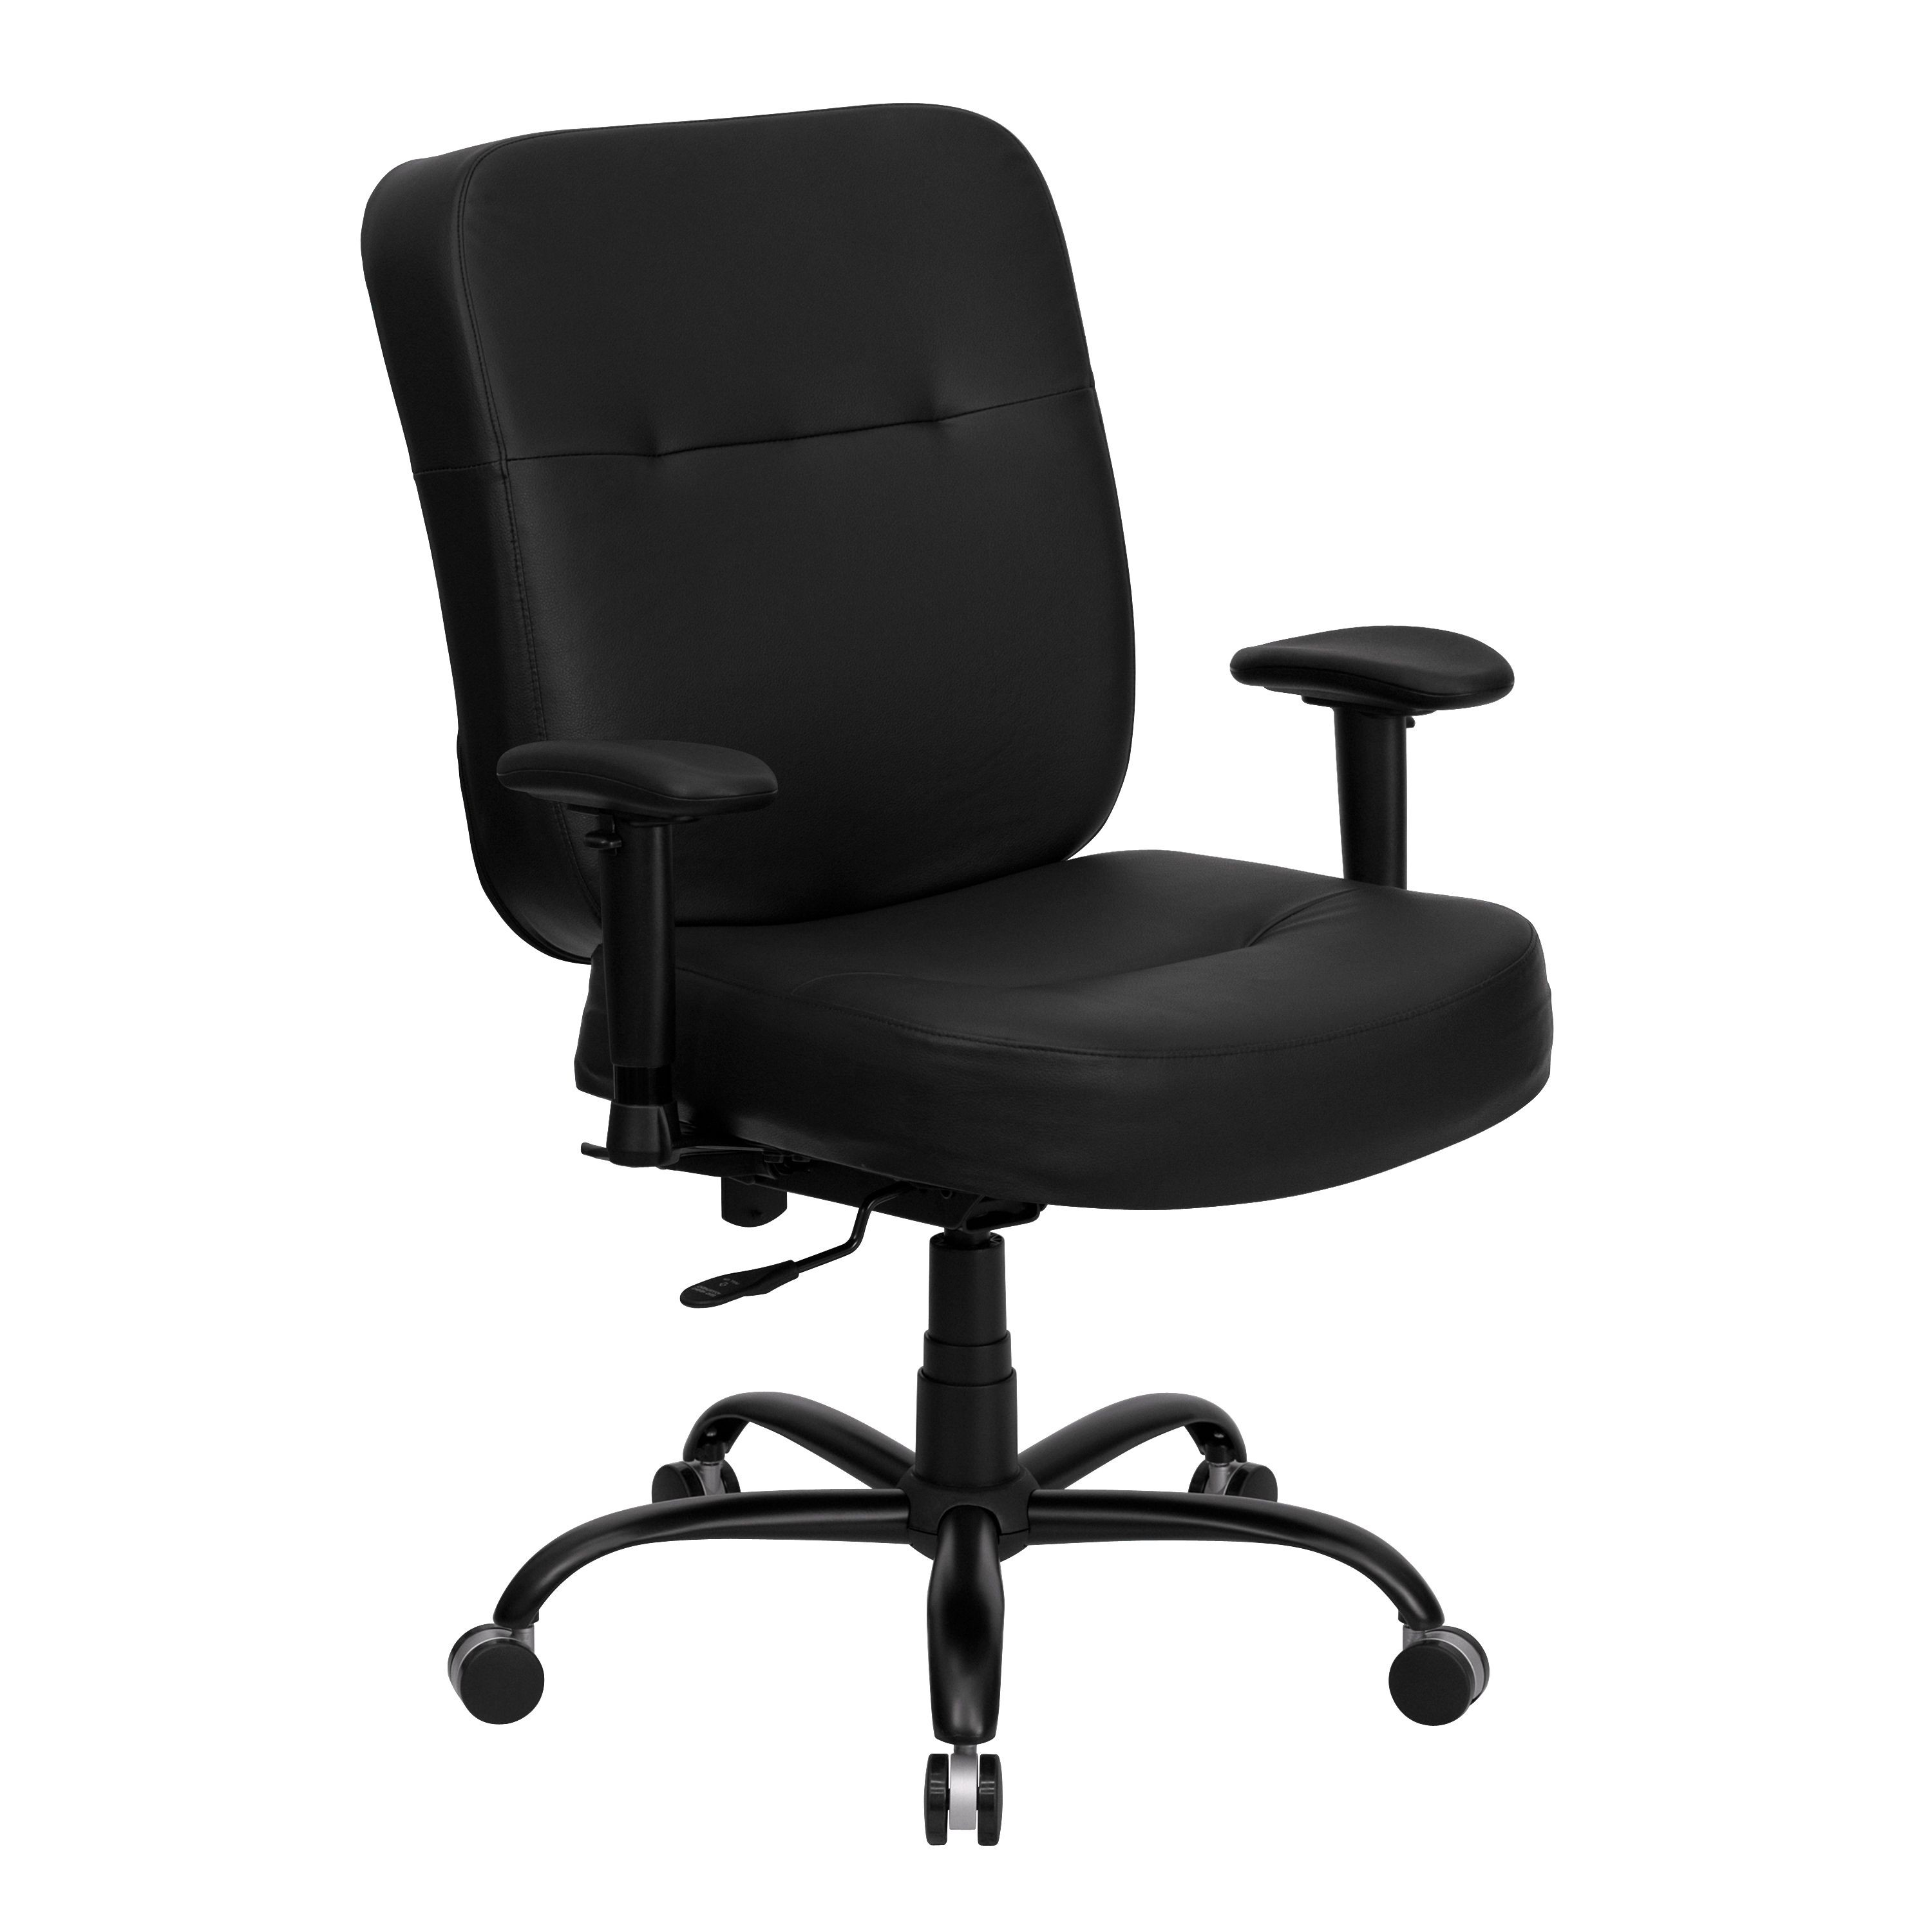 Flash Furniture WL-735SYG-BK-LEA-A-GG HERCULES Series Big & Tall Black Fabric Executive Task Chair with Extra Wide Seat and Arms, 400 Lb. Capacity